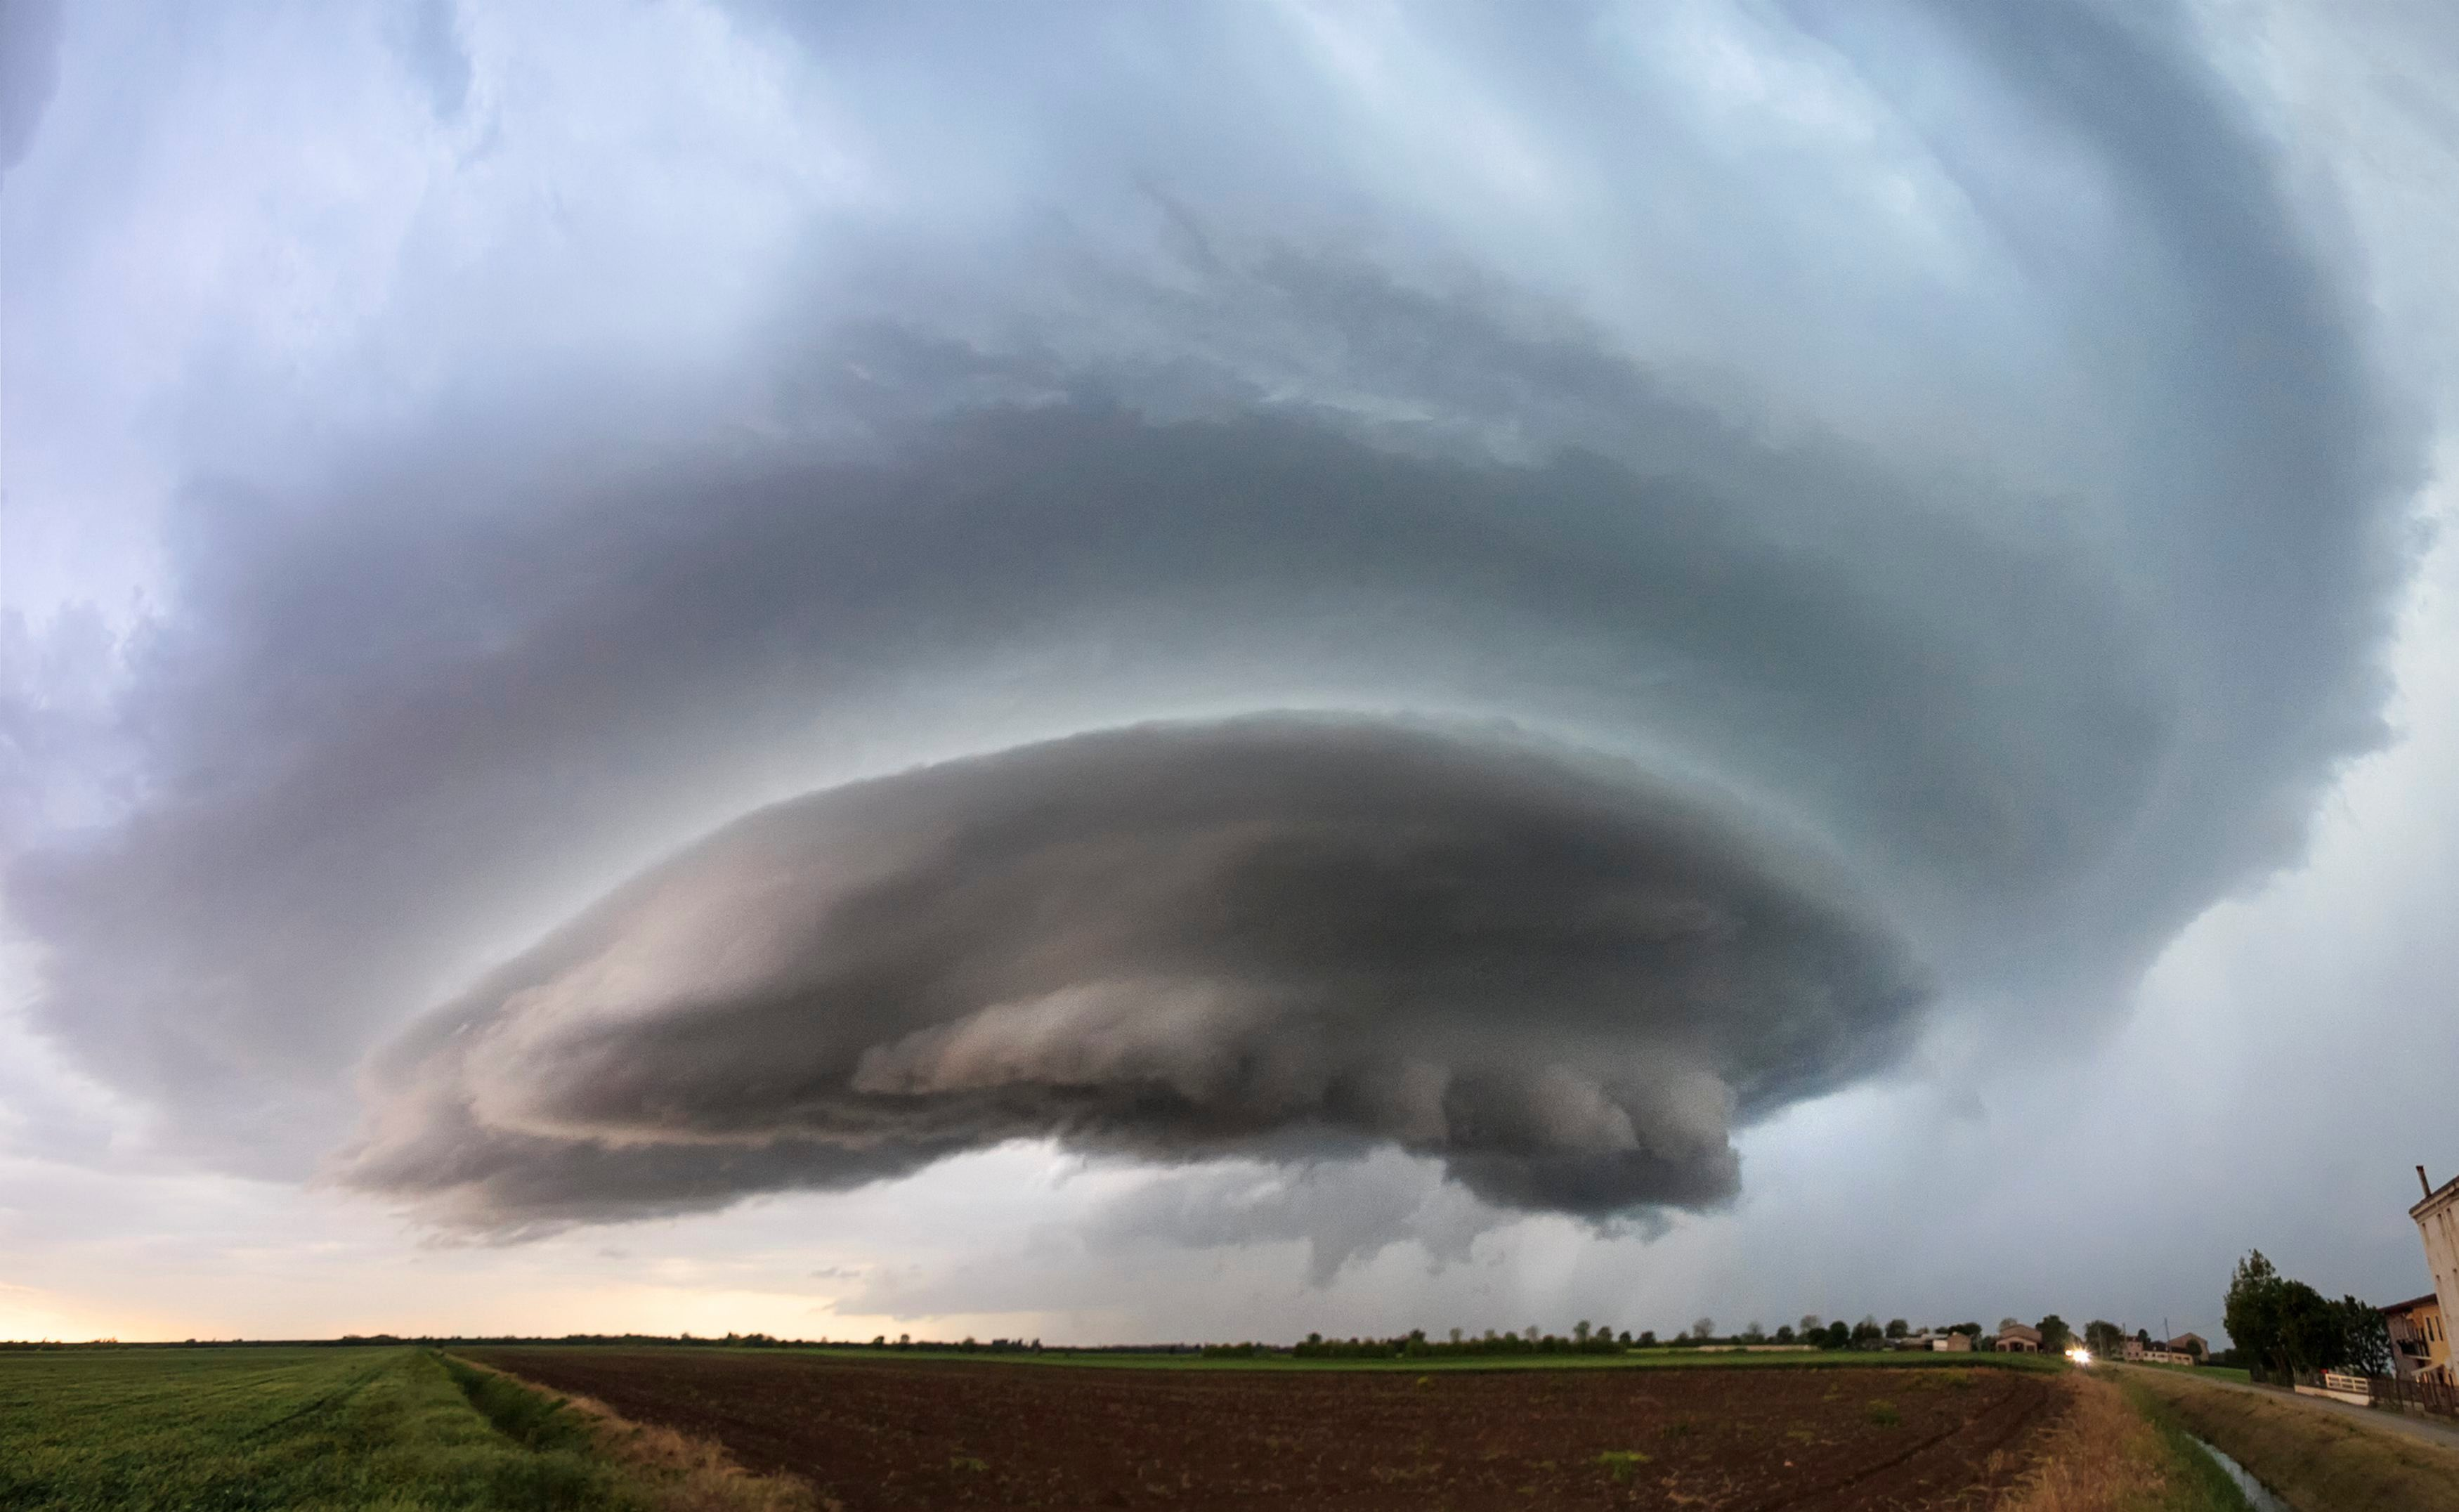 dramatic pictures show spectacular